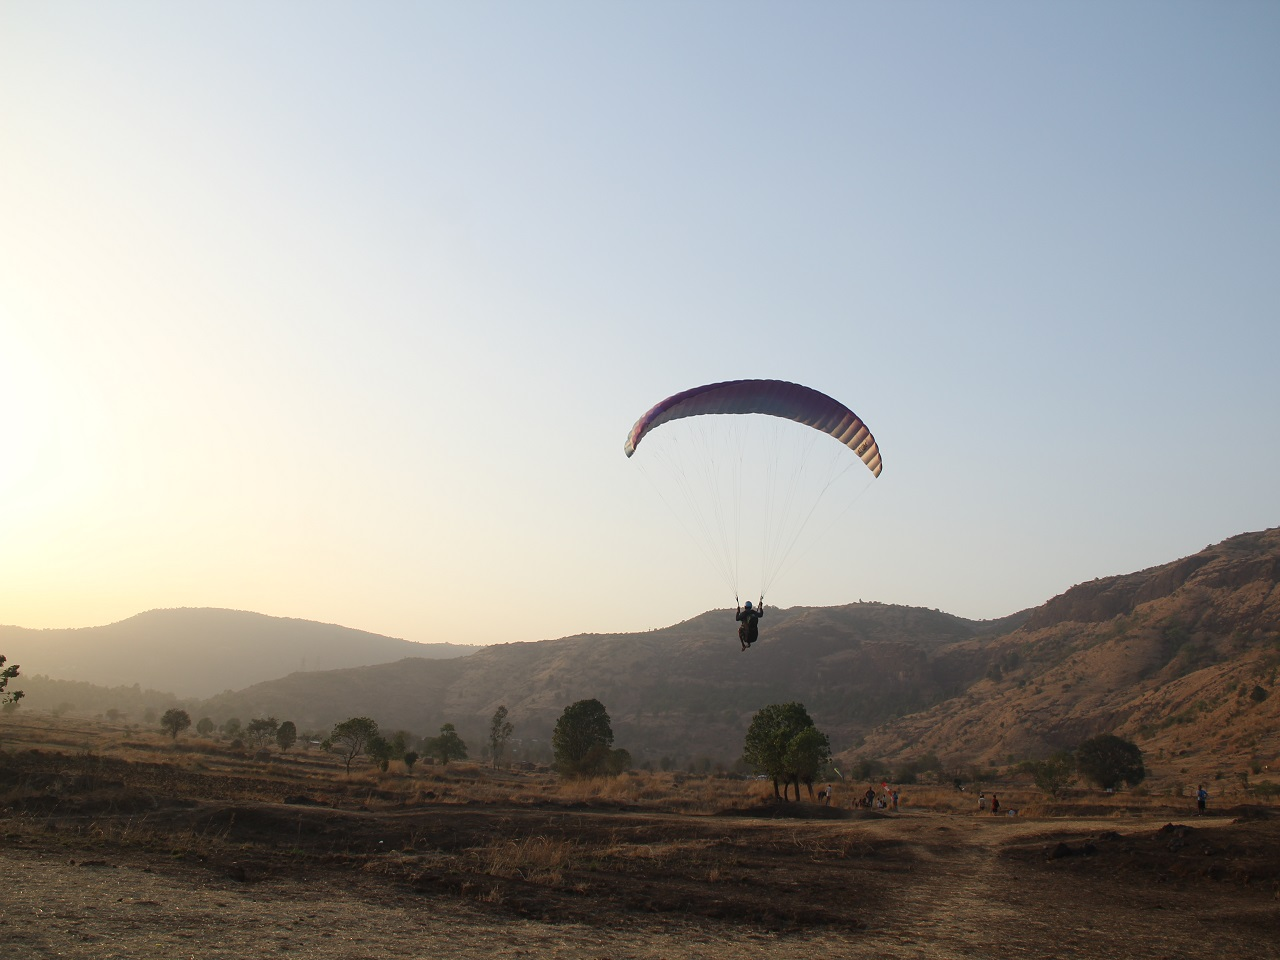 Tandem joyrides | Best spots for paragliding in India